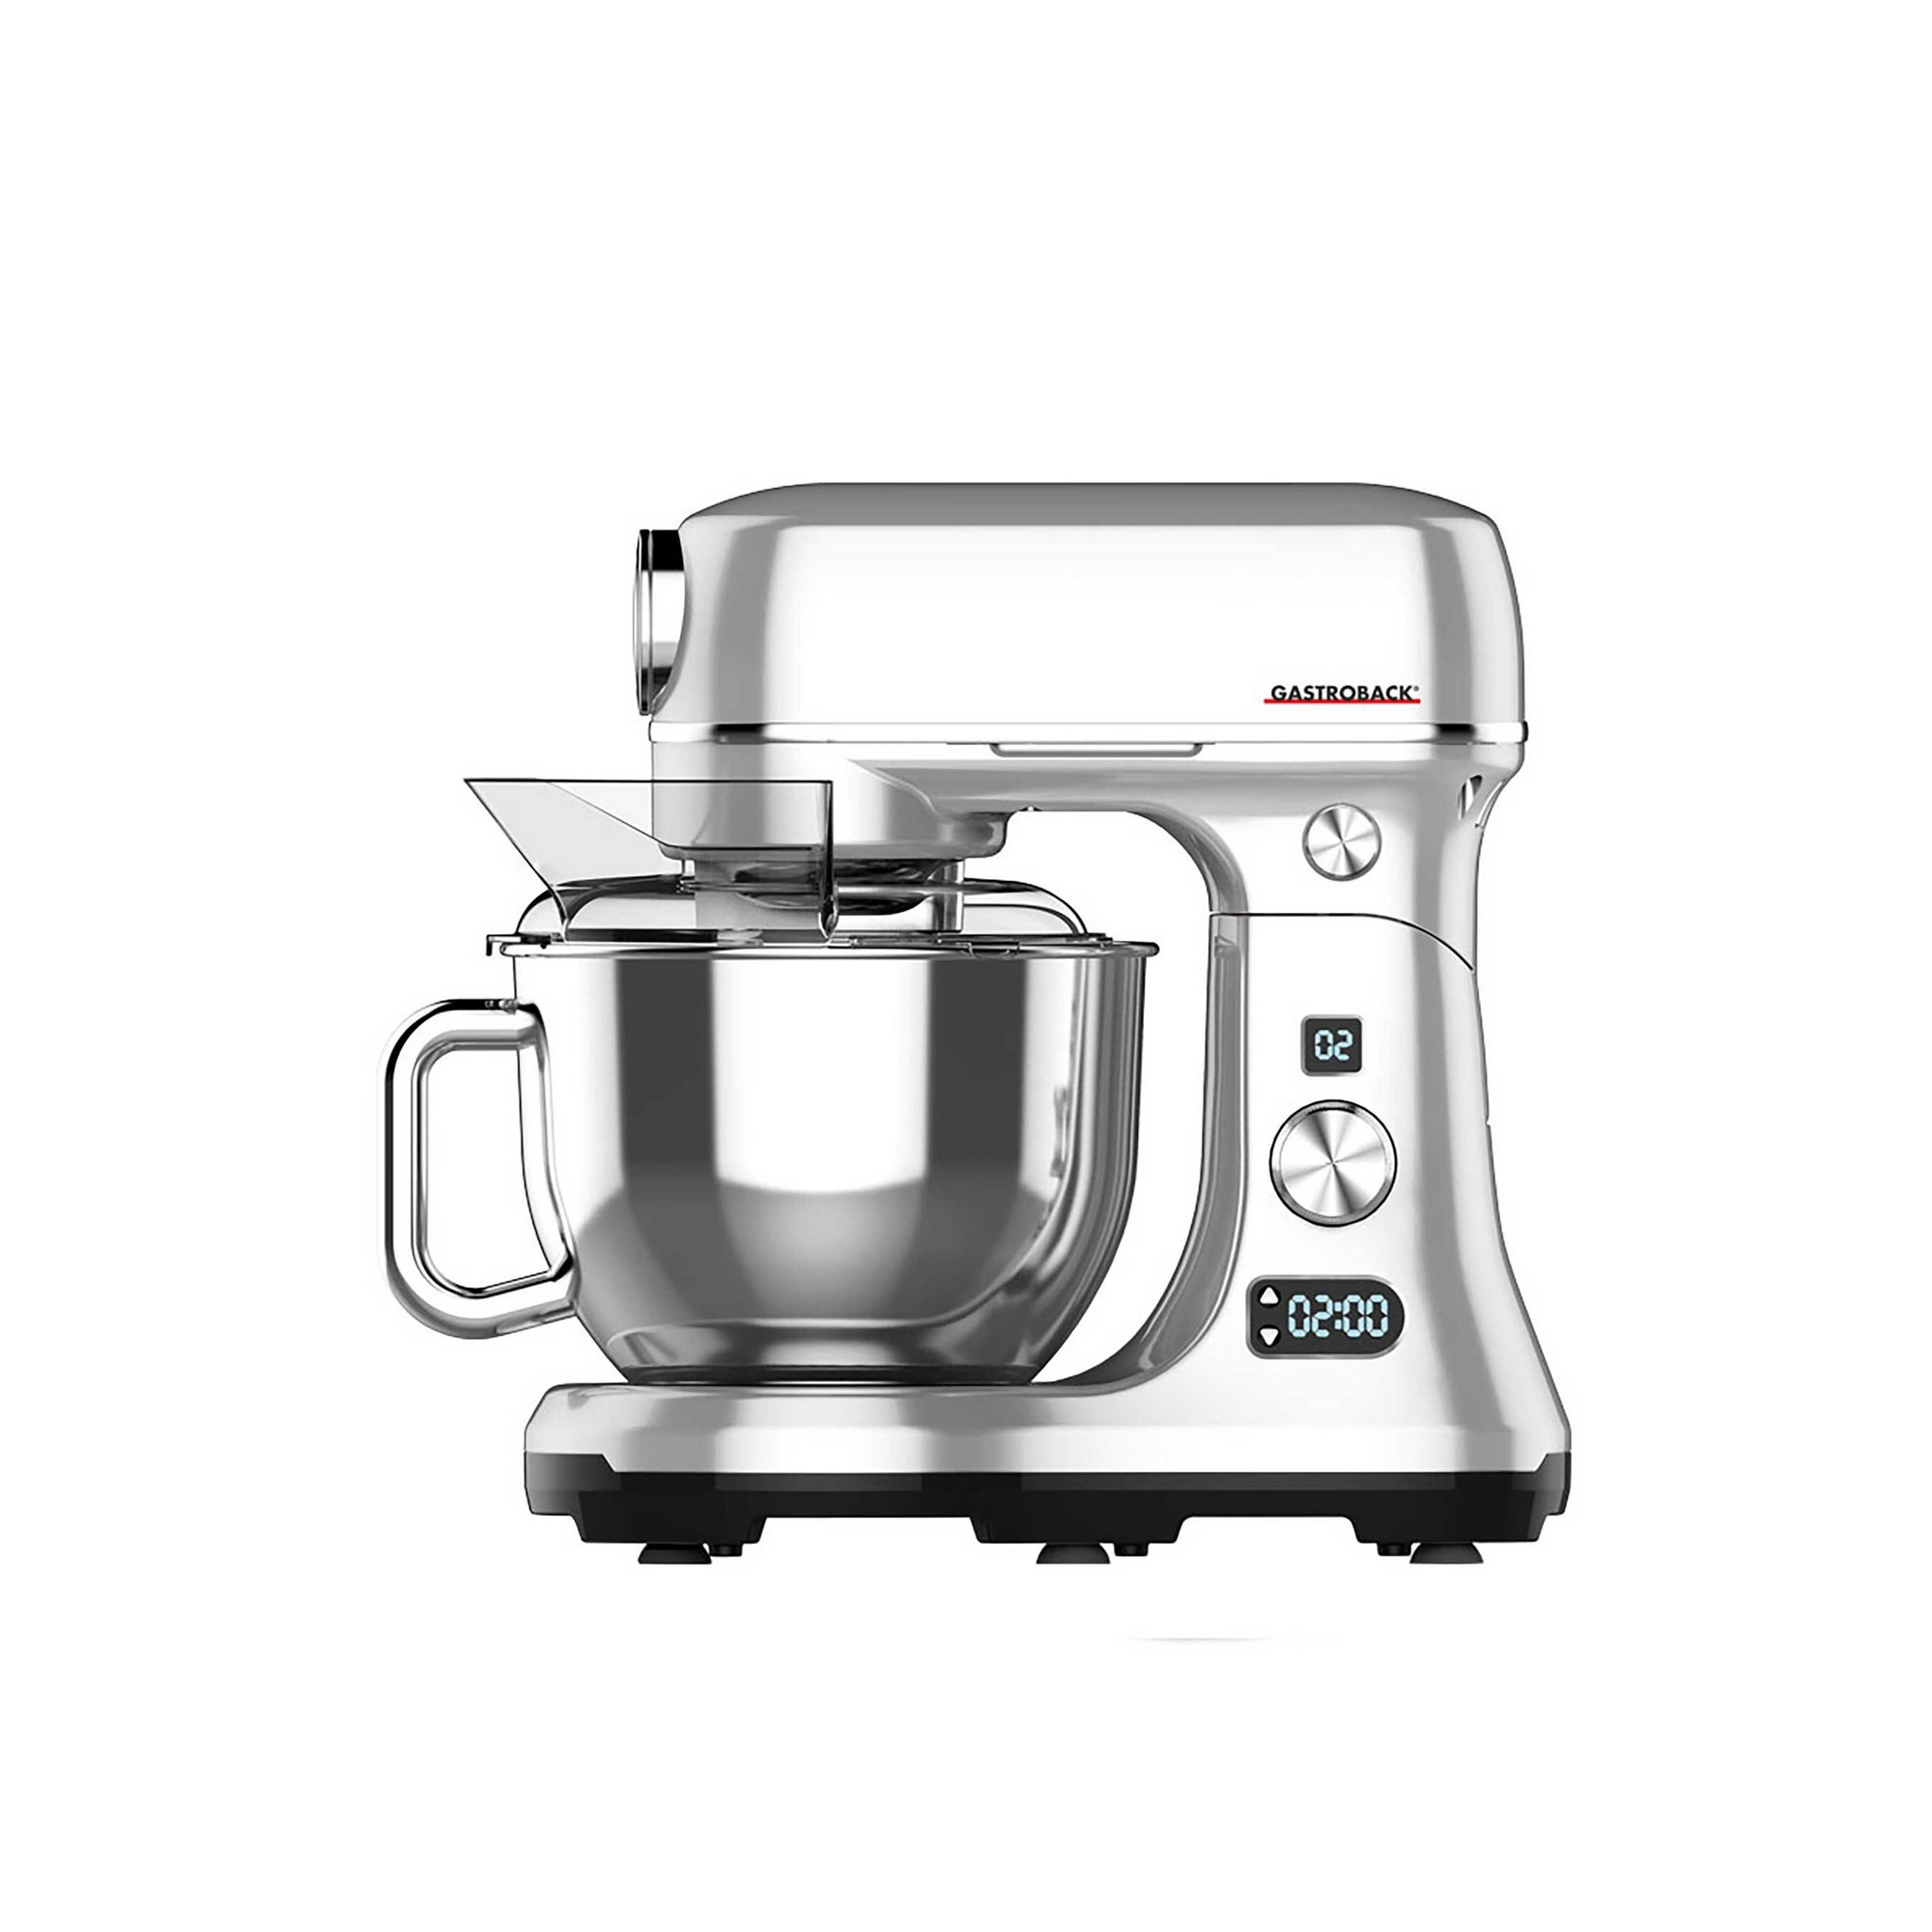 Image of Gastroback Design 5 Litre Stand Mixer Advanced Digital